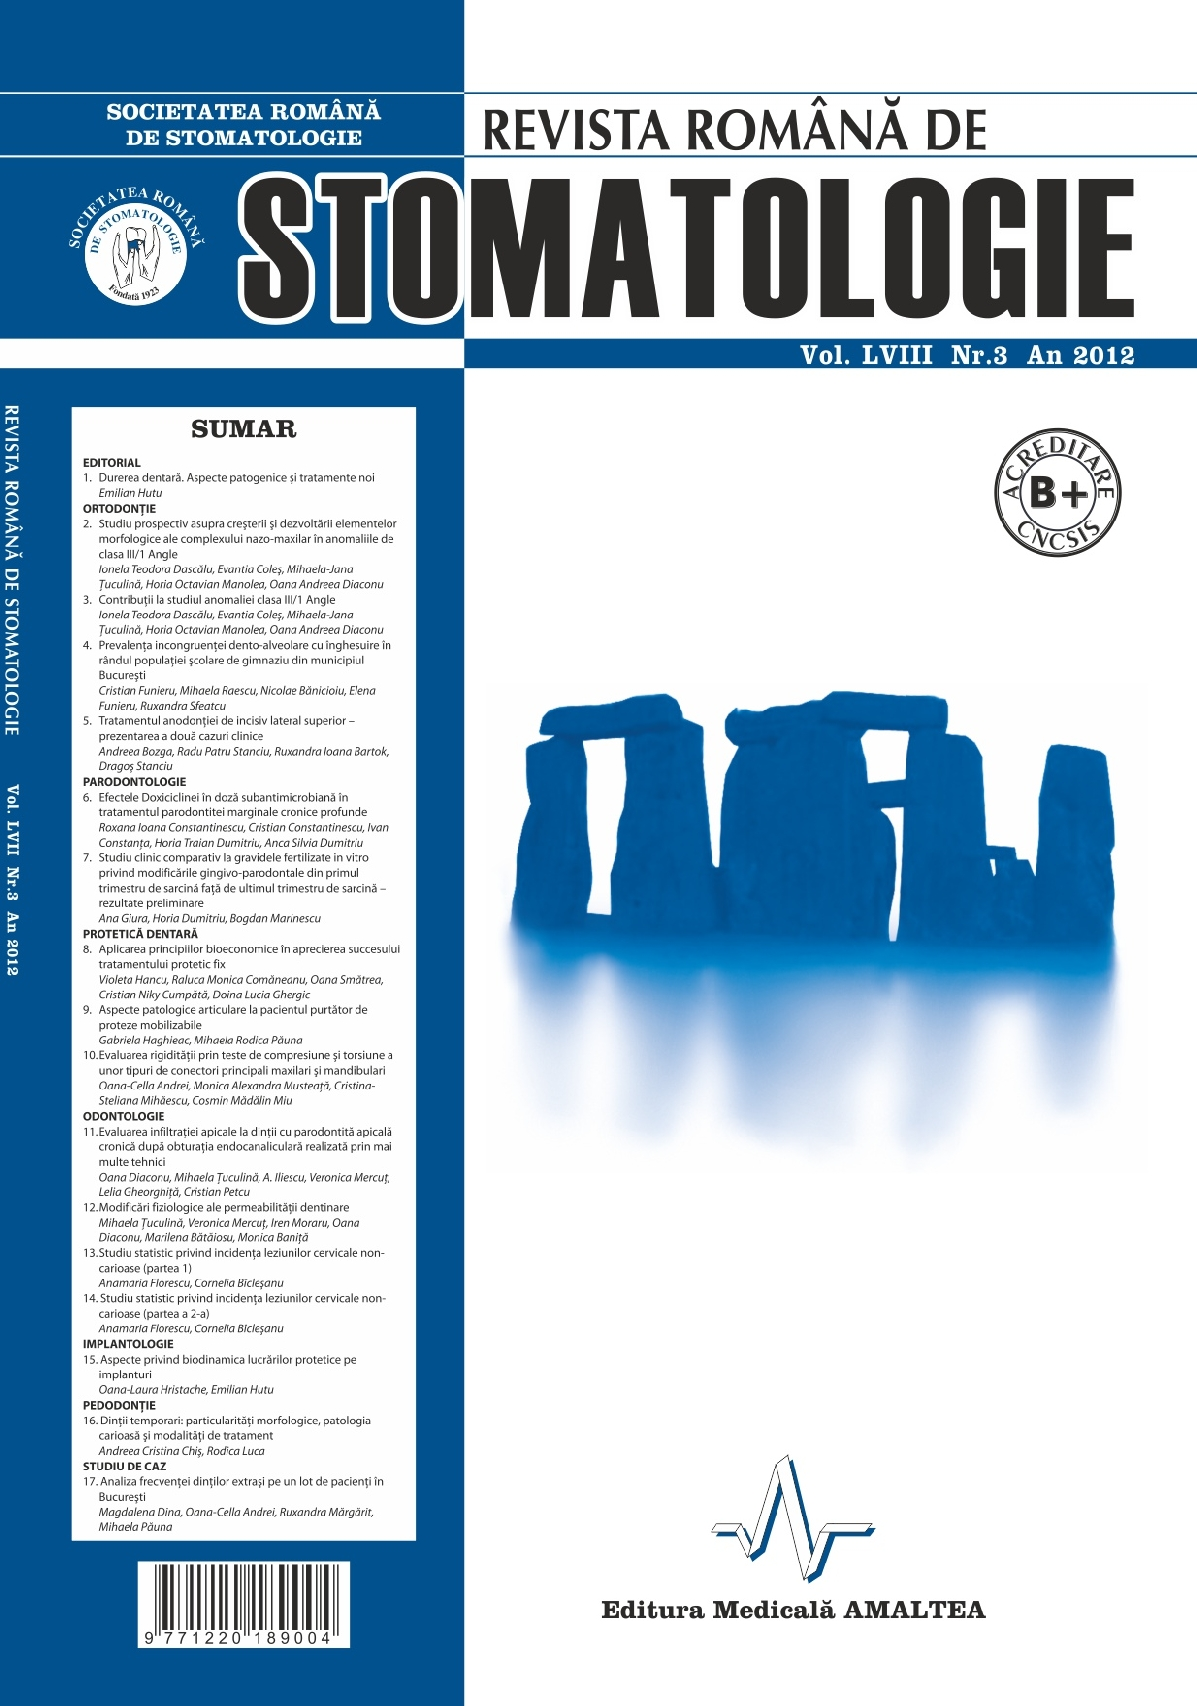 Revista Romana de STOMATOLOGIE - Romanian Journal of Stomatology, Vol. LVIII, Nr. 3, An 2012